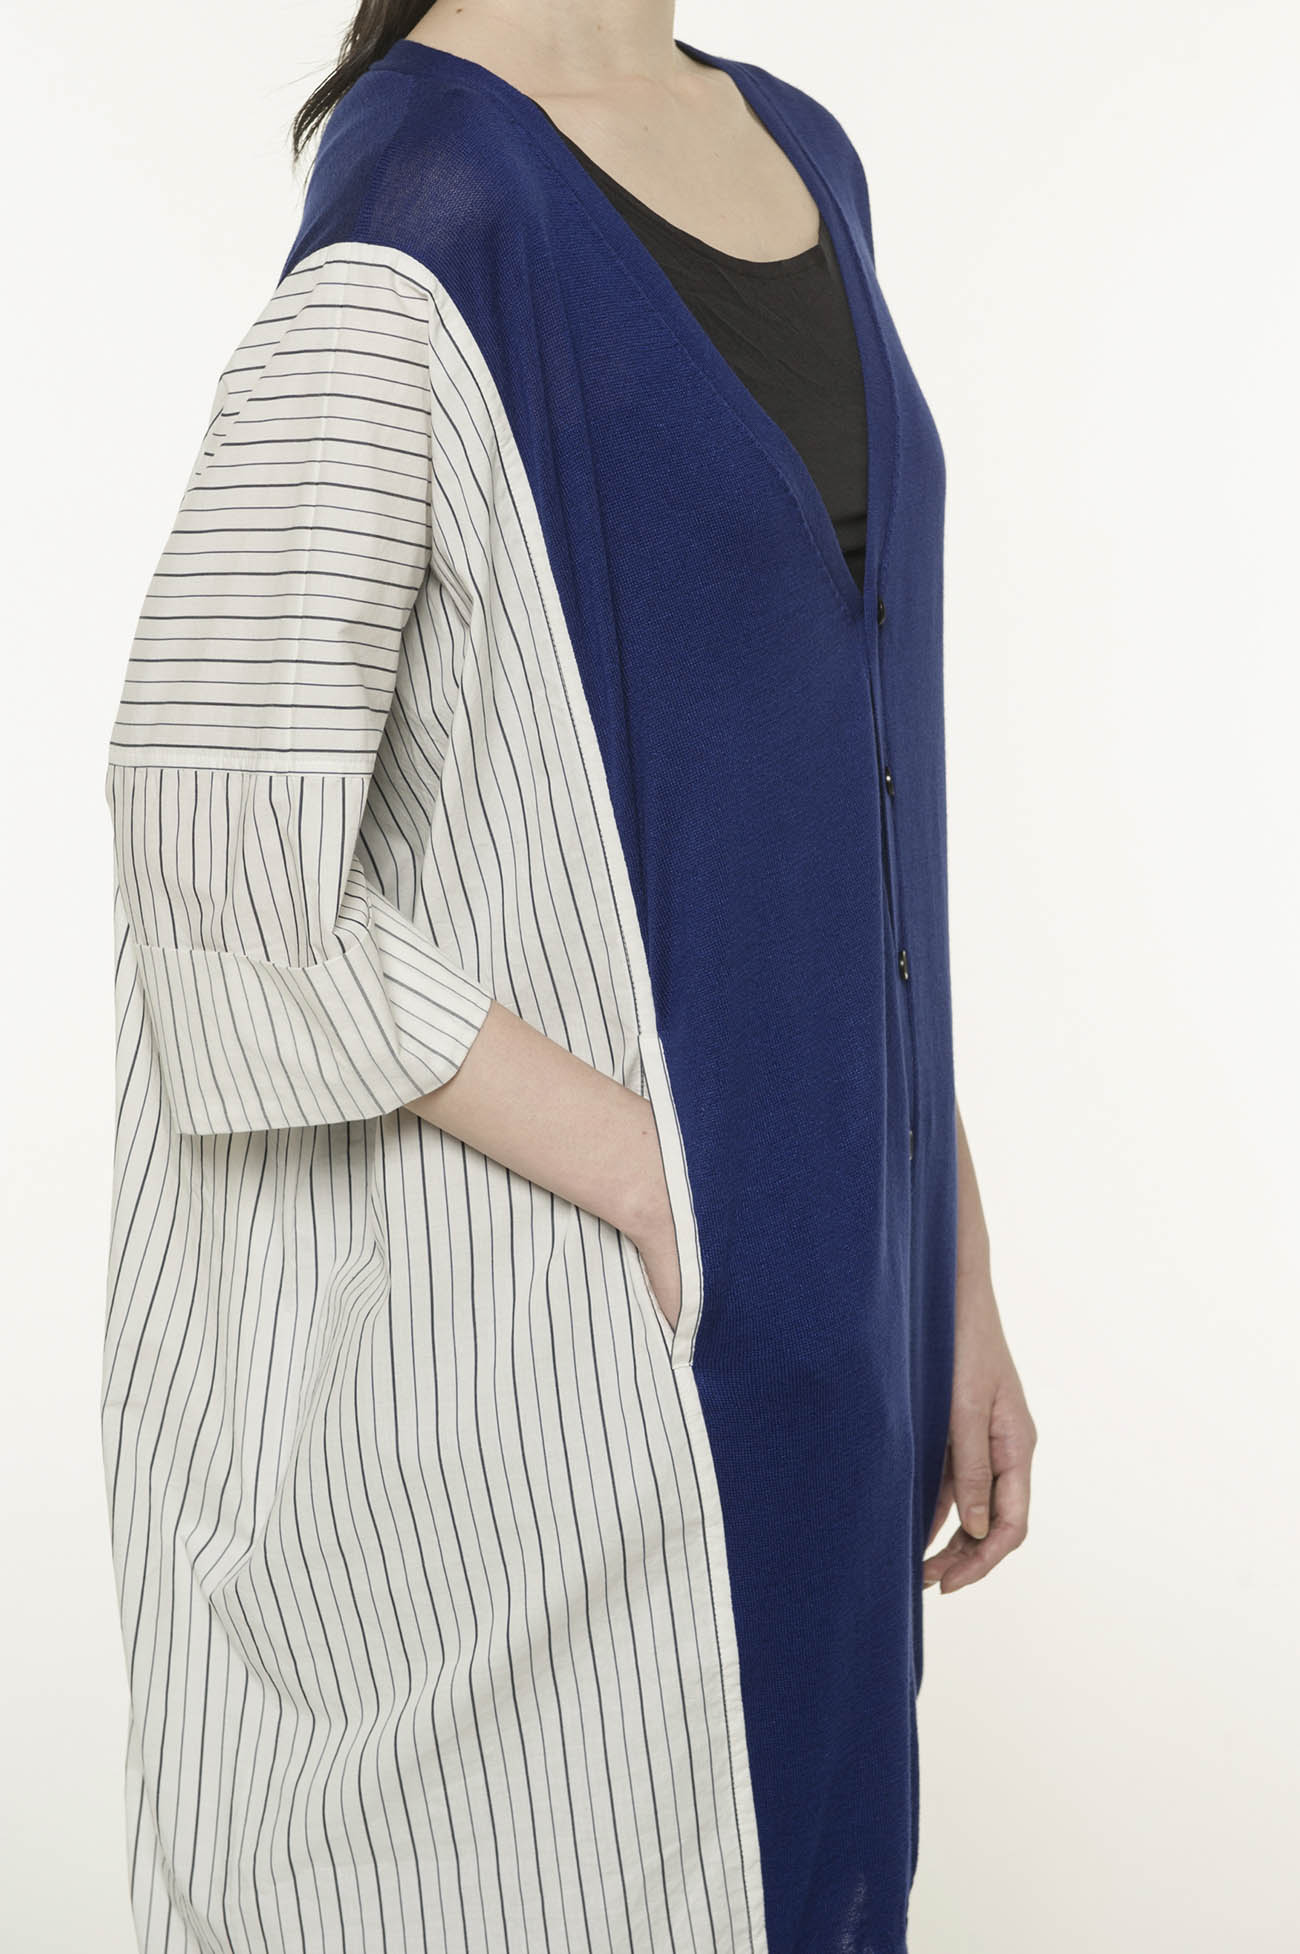 RISMATbyY's Cotton Rayon Silk India Shirt Switching Asymmetric Cardigan